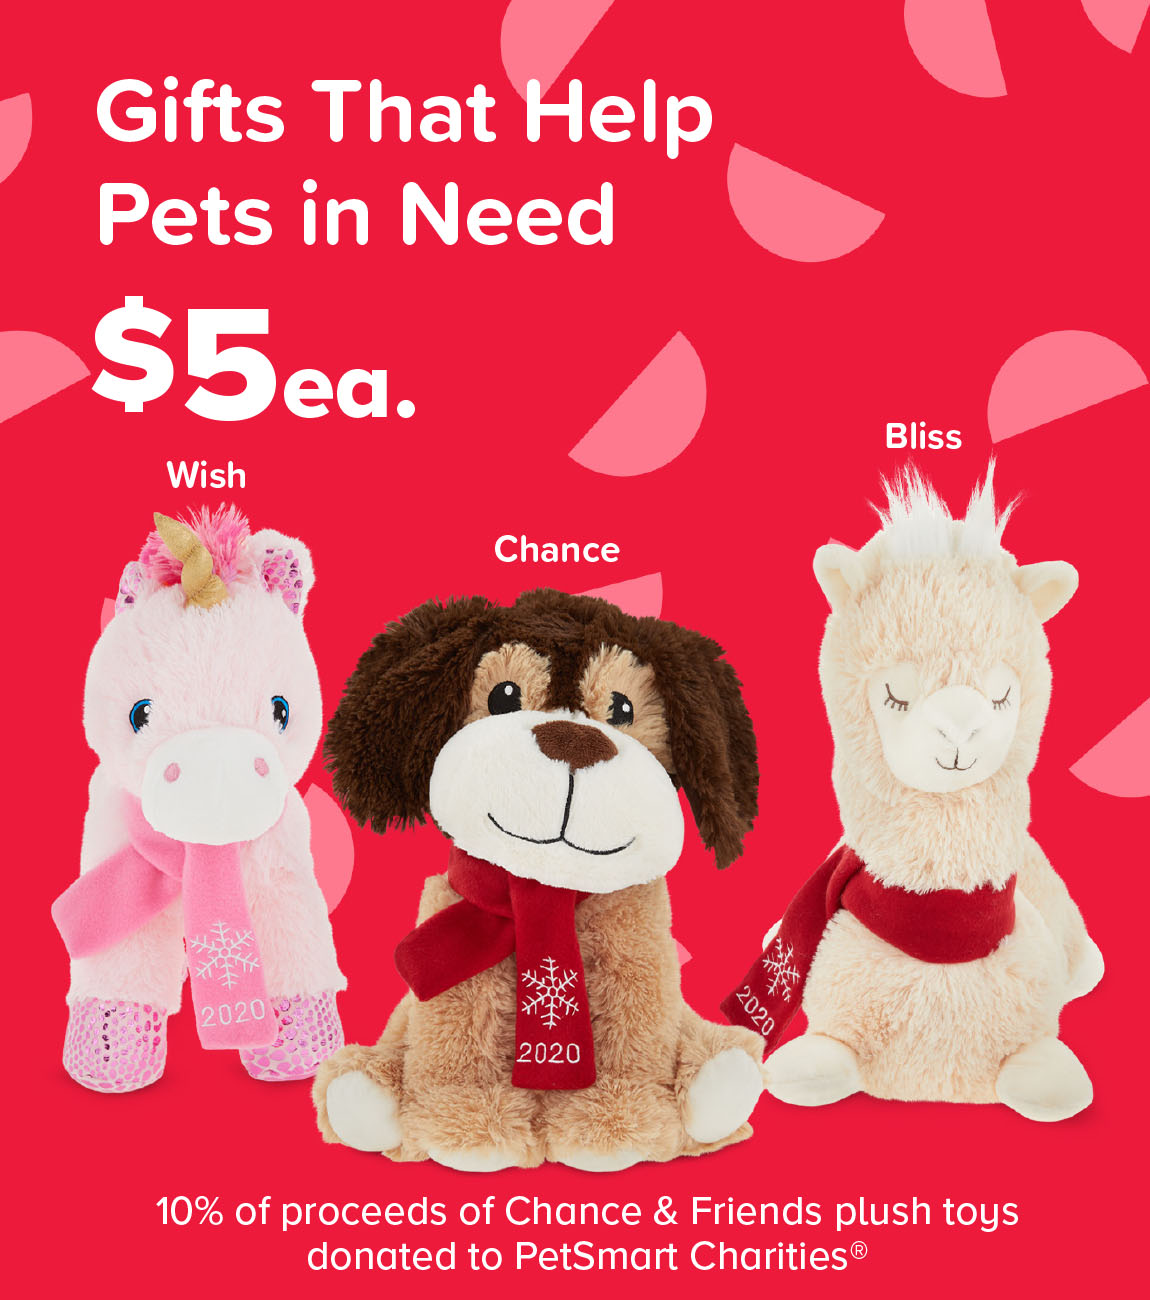 $5 ea. Chance & Friends plush toys 10% of proceeds of Chance & Friends plush toys donated to Petsmart Charities®